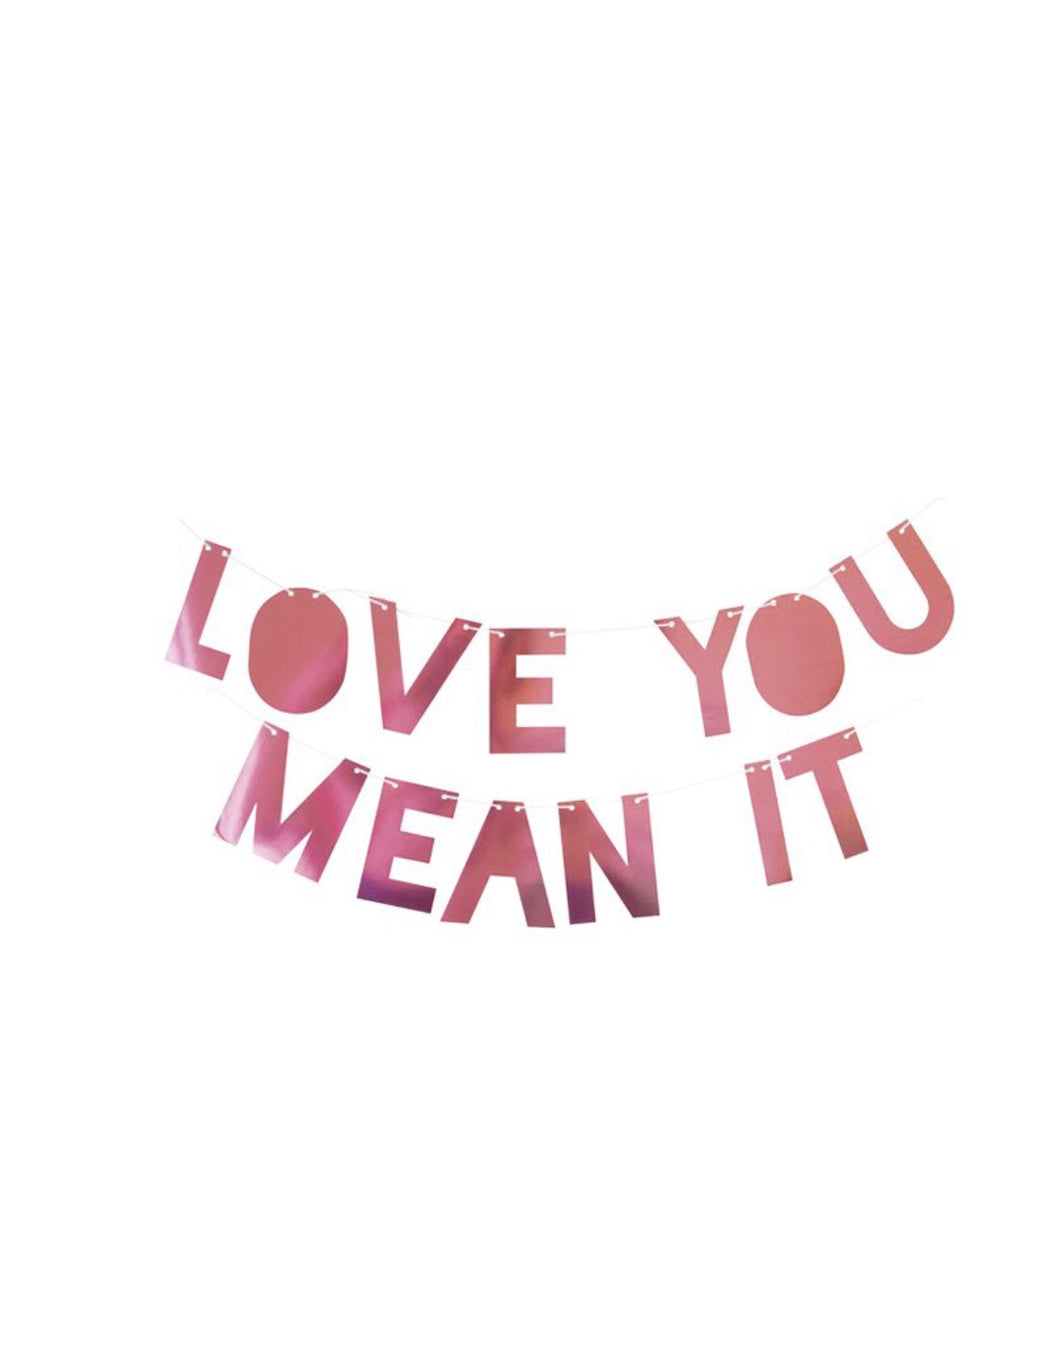 Love You Mean It Banner